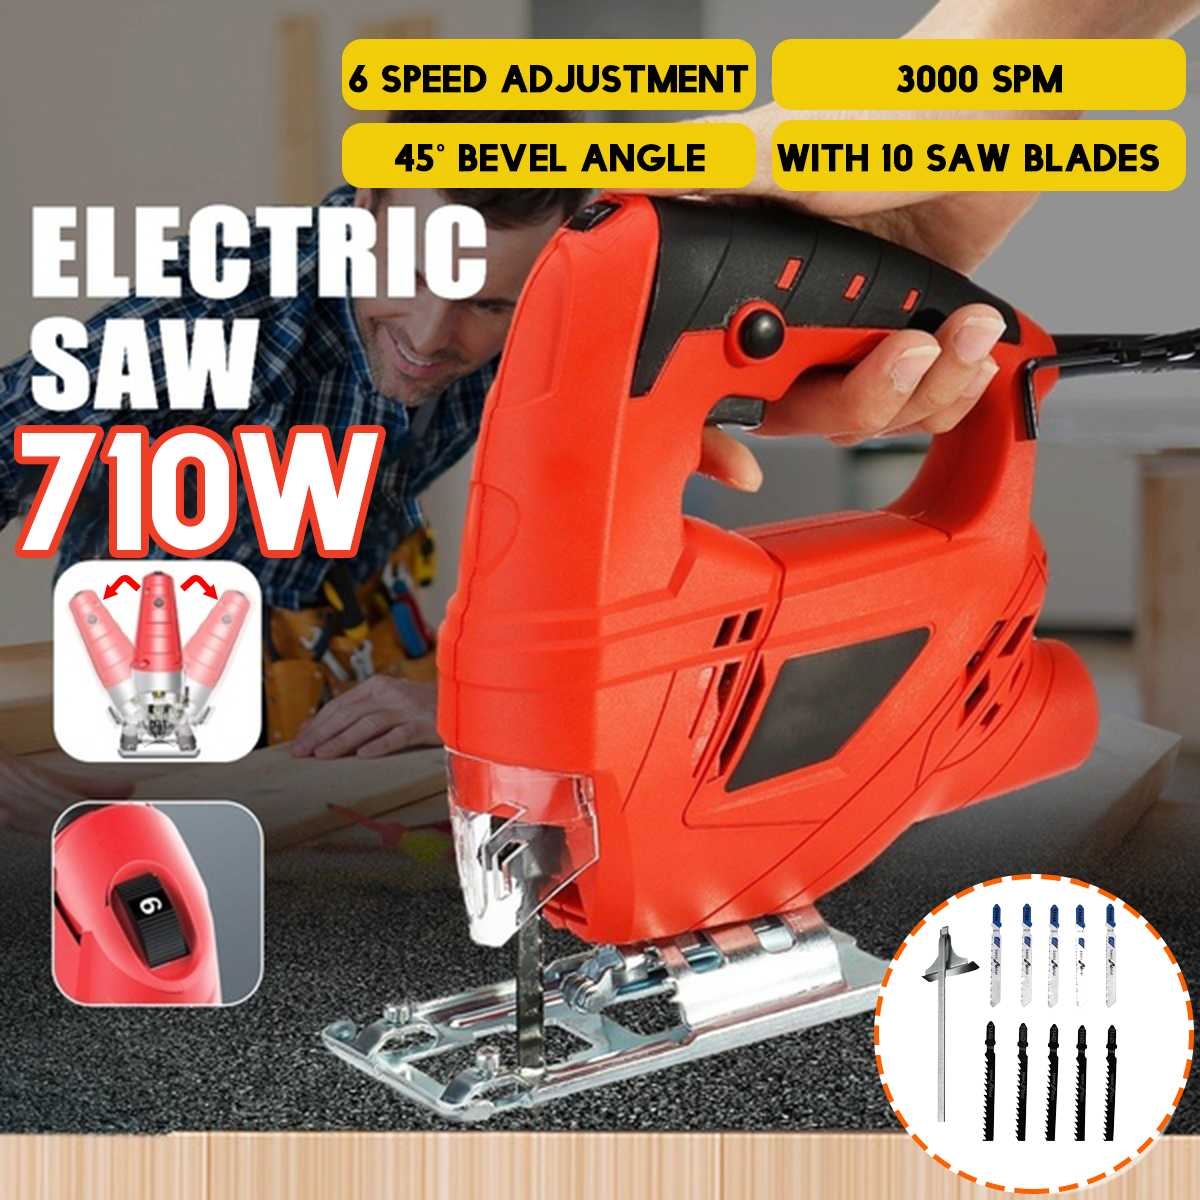 Jig Saw 6 Variable Speed Electric Saw With 10 Pieces Blades 710W Multifunctional Jigsaw Electric Saws for Woodworking Power Tool